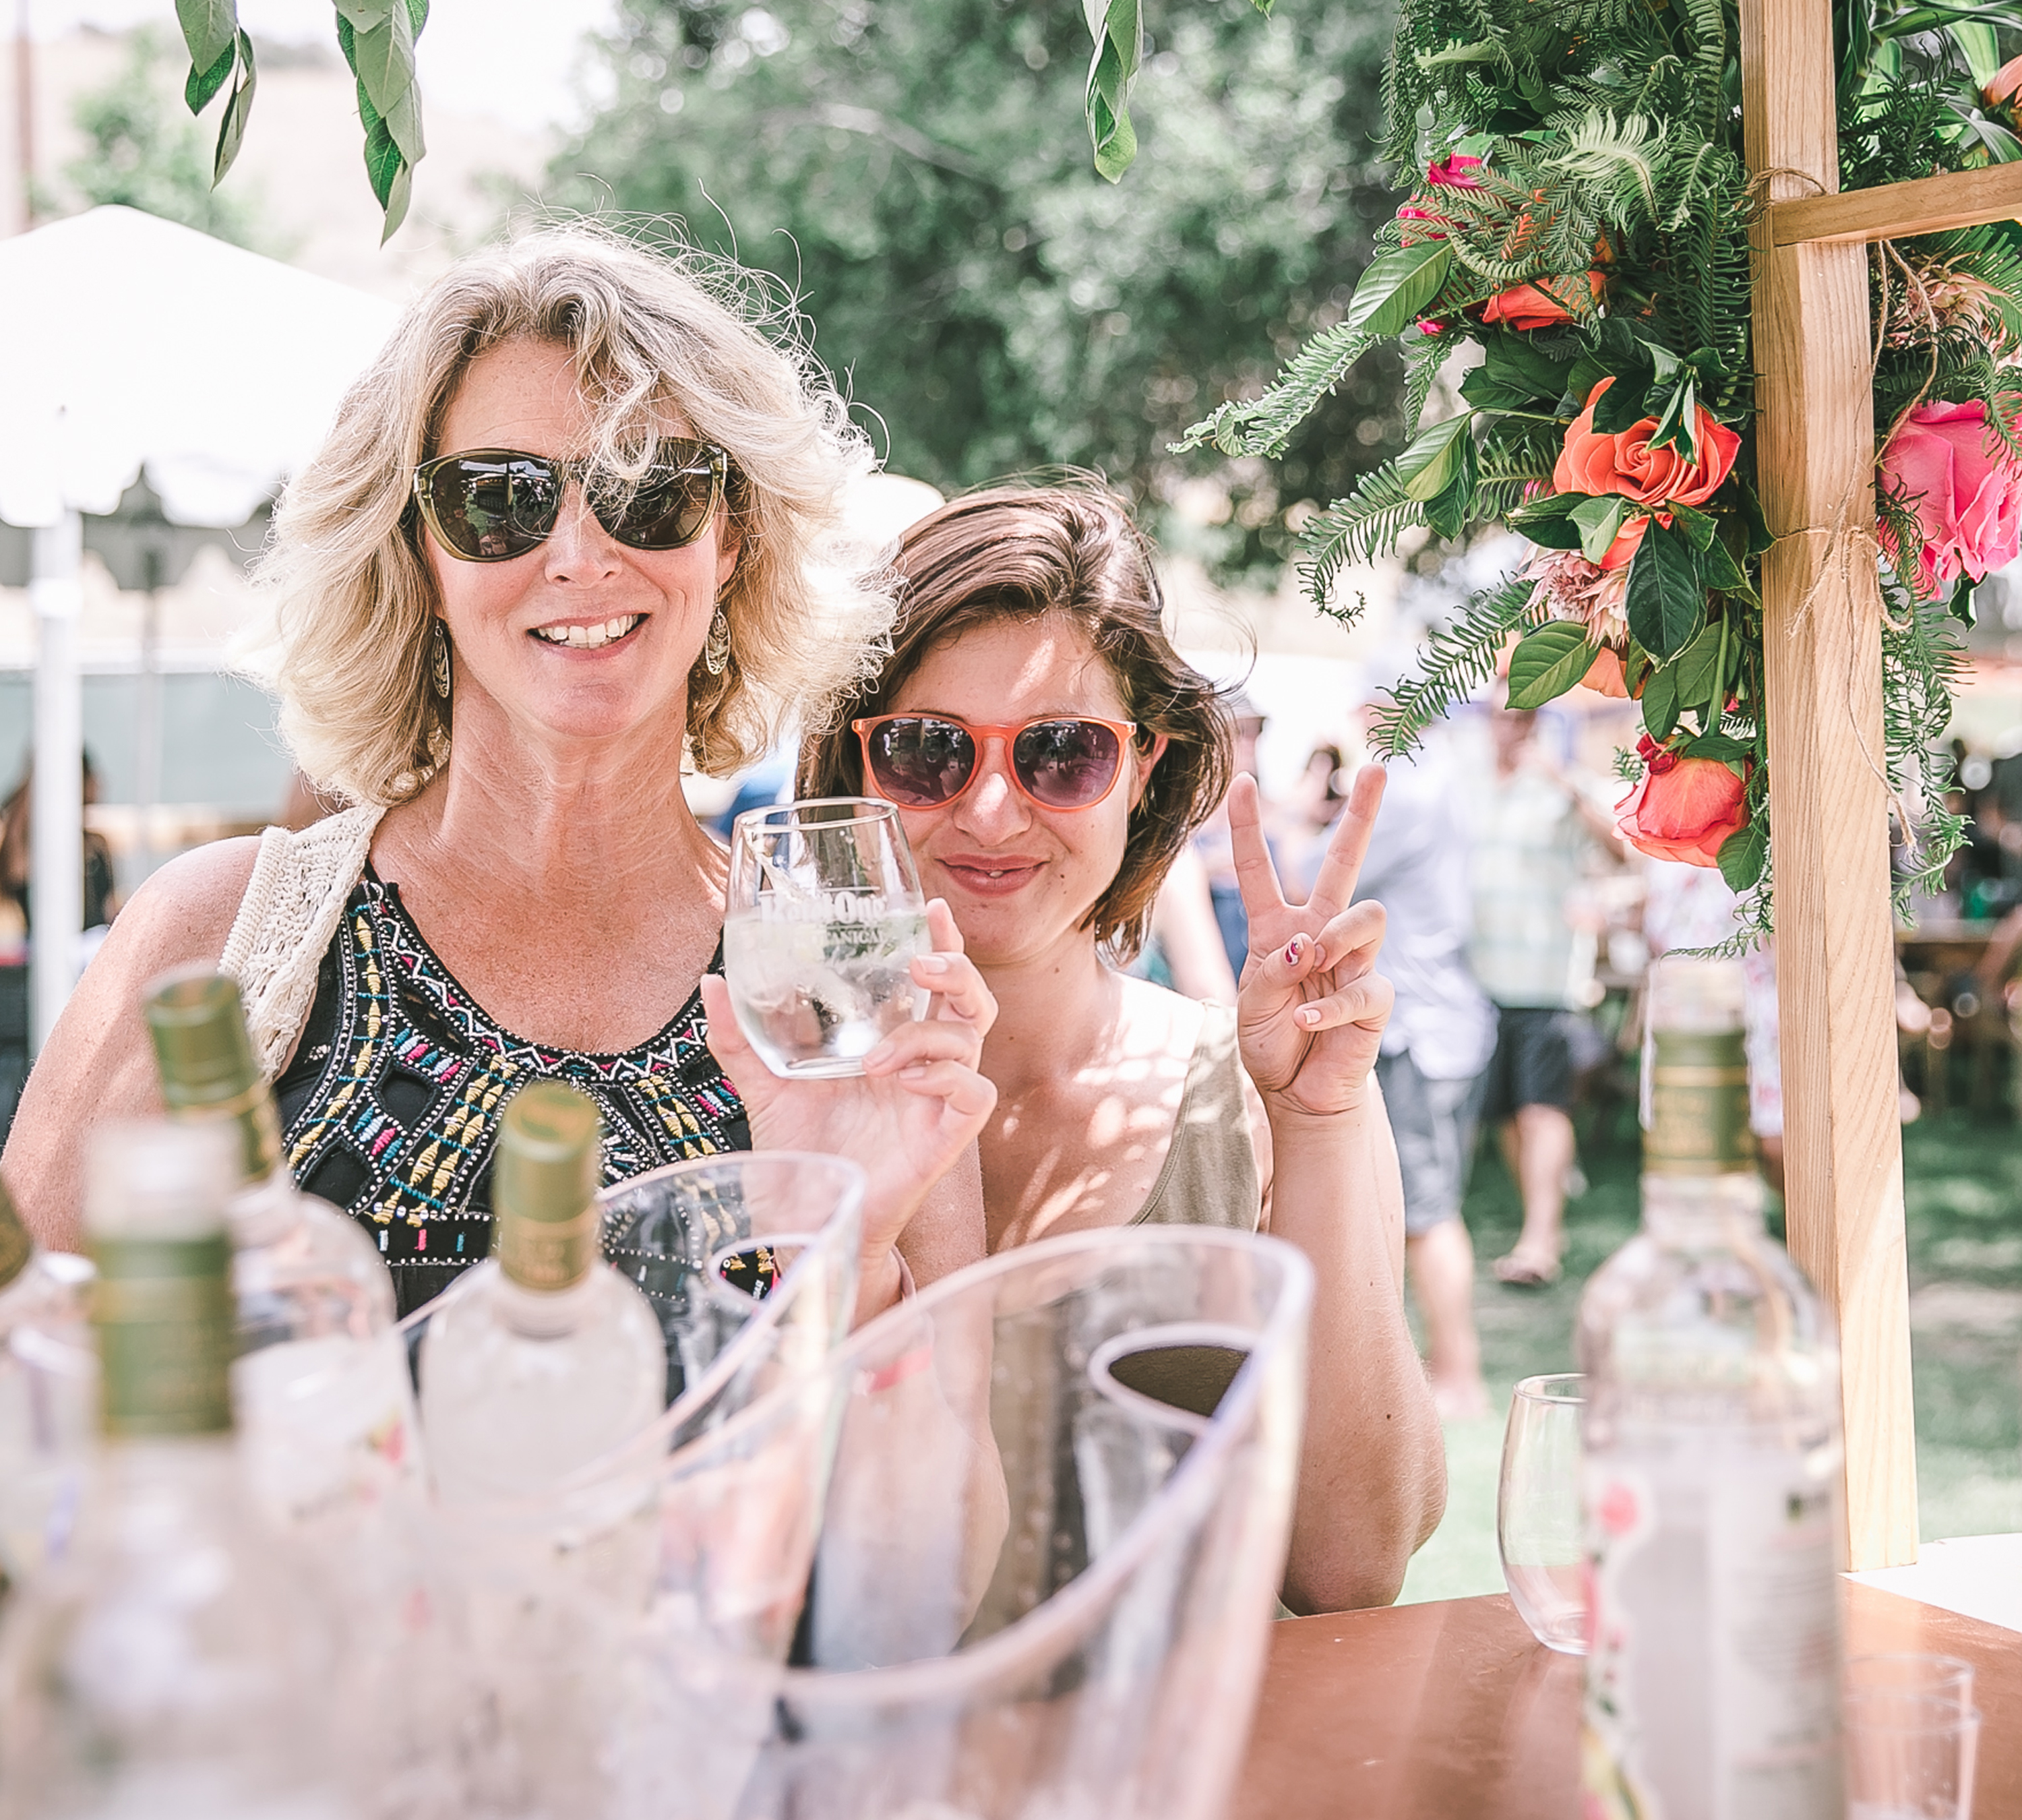 The country music and wine festival MissionFest returns to San Juan Capistrano for its second year at the Rancho Mission Viejo Riding Park on Saturday, July 13. Photo: Courtesy of Luis Esparza